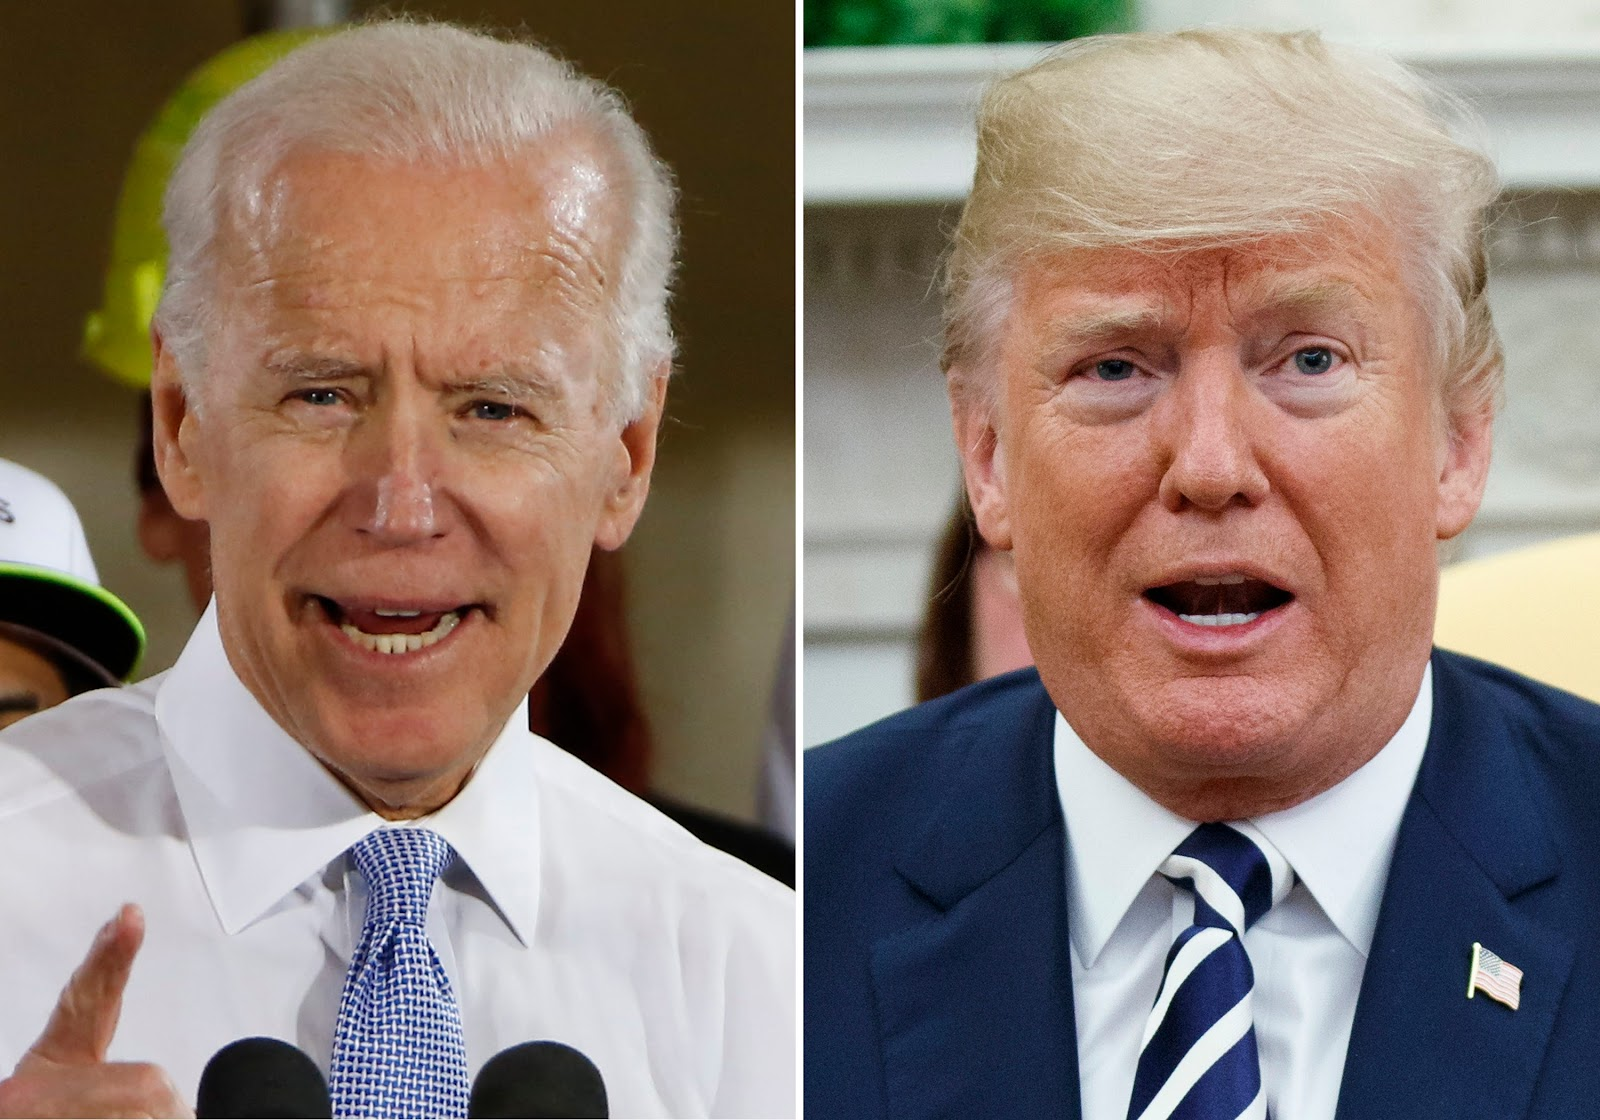 Election 2020: At 50-day mark, voters are anxious about Trump and Biden